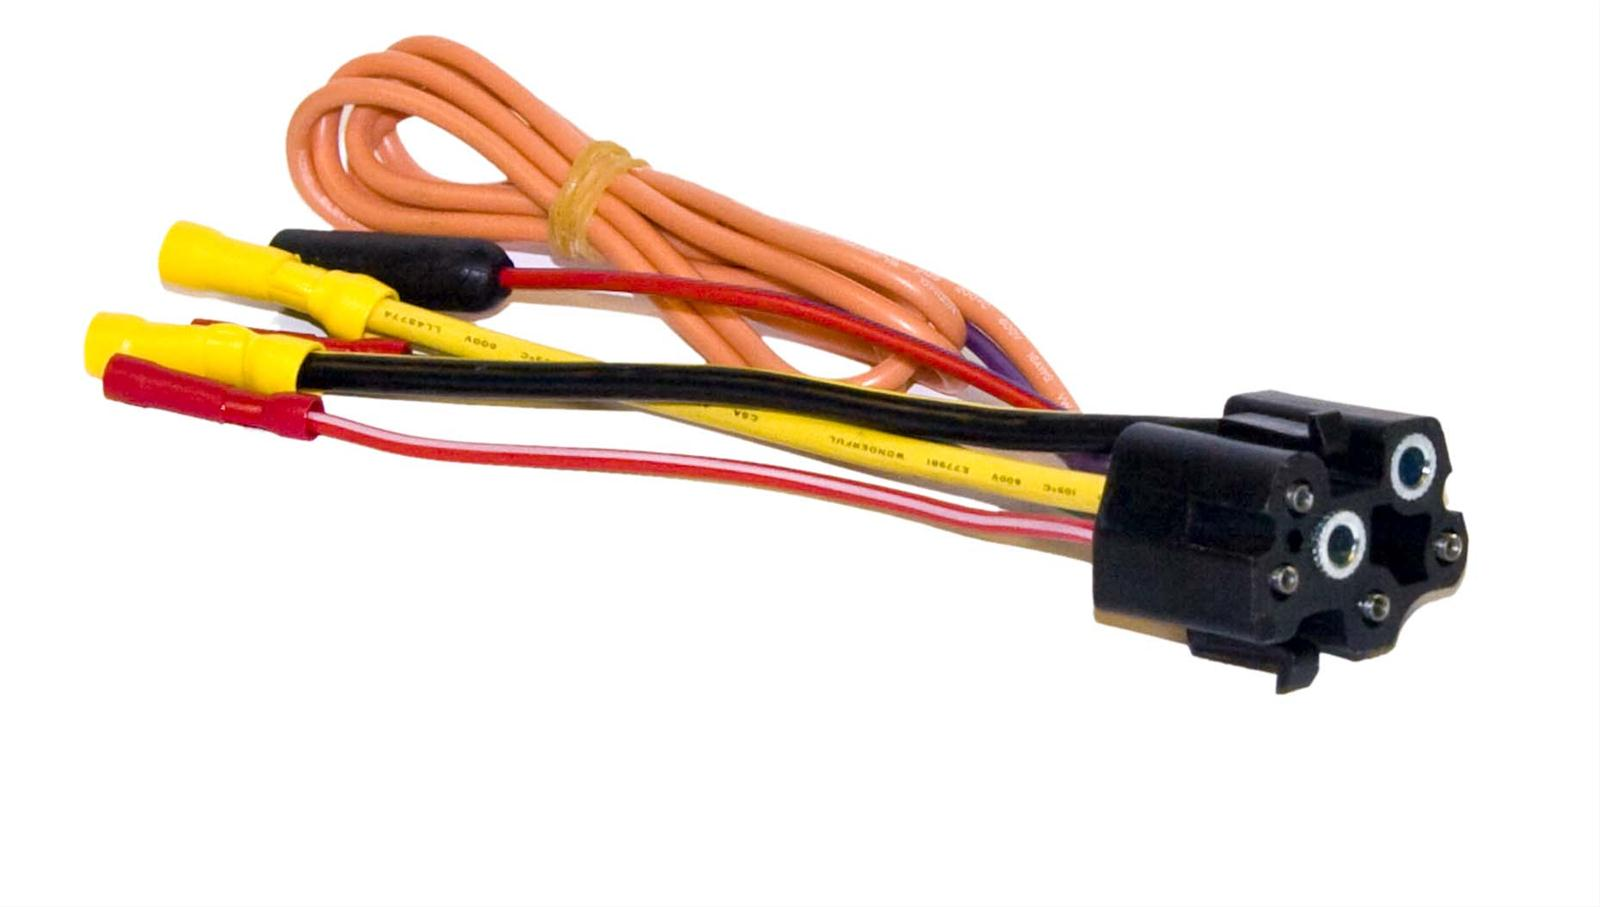 hight resolution of scott drake ignition switch pigtails c9az 14313 a free shipping on ford ignition switch pigtail wiring